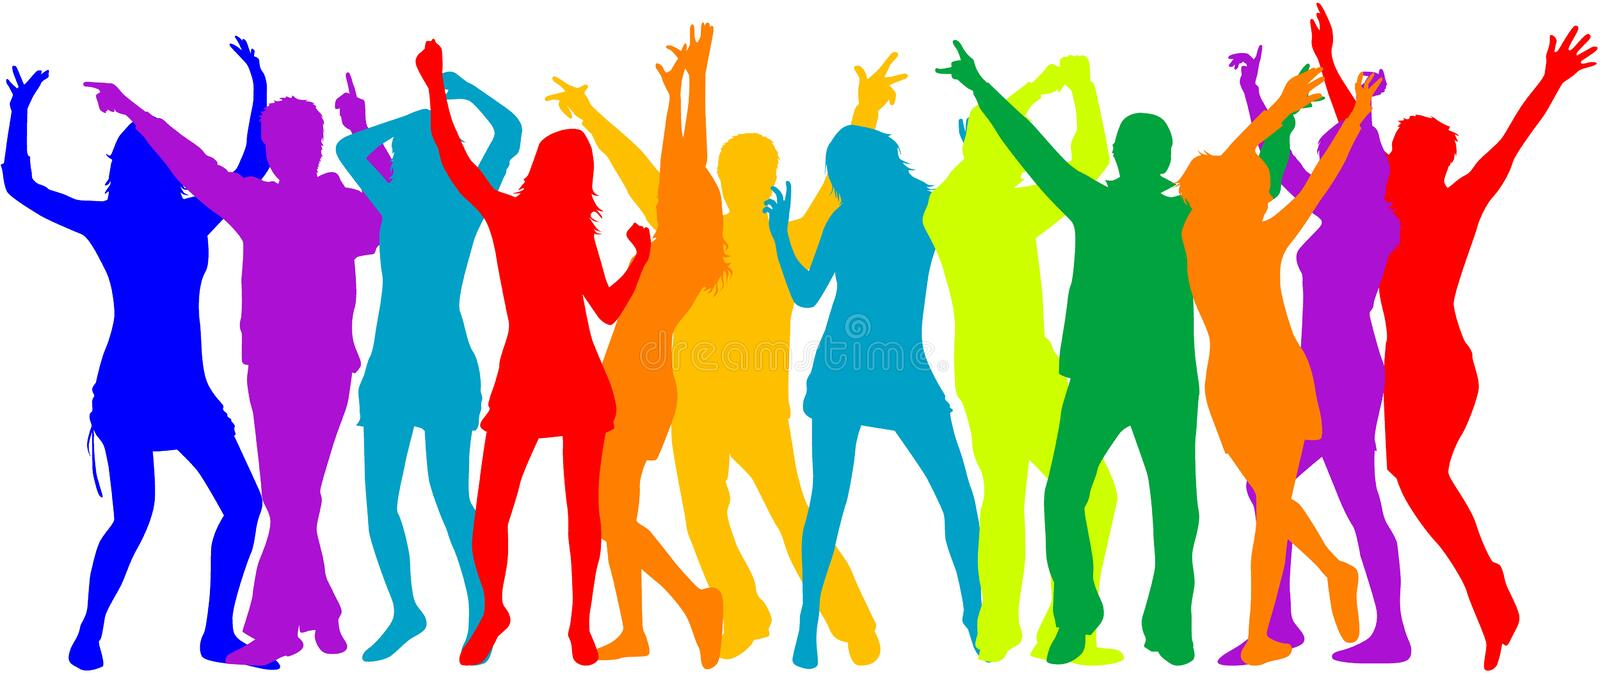 Party Crowd , people silhouettes - color vector illustration